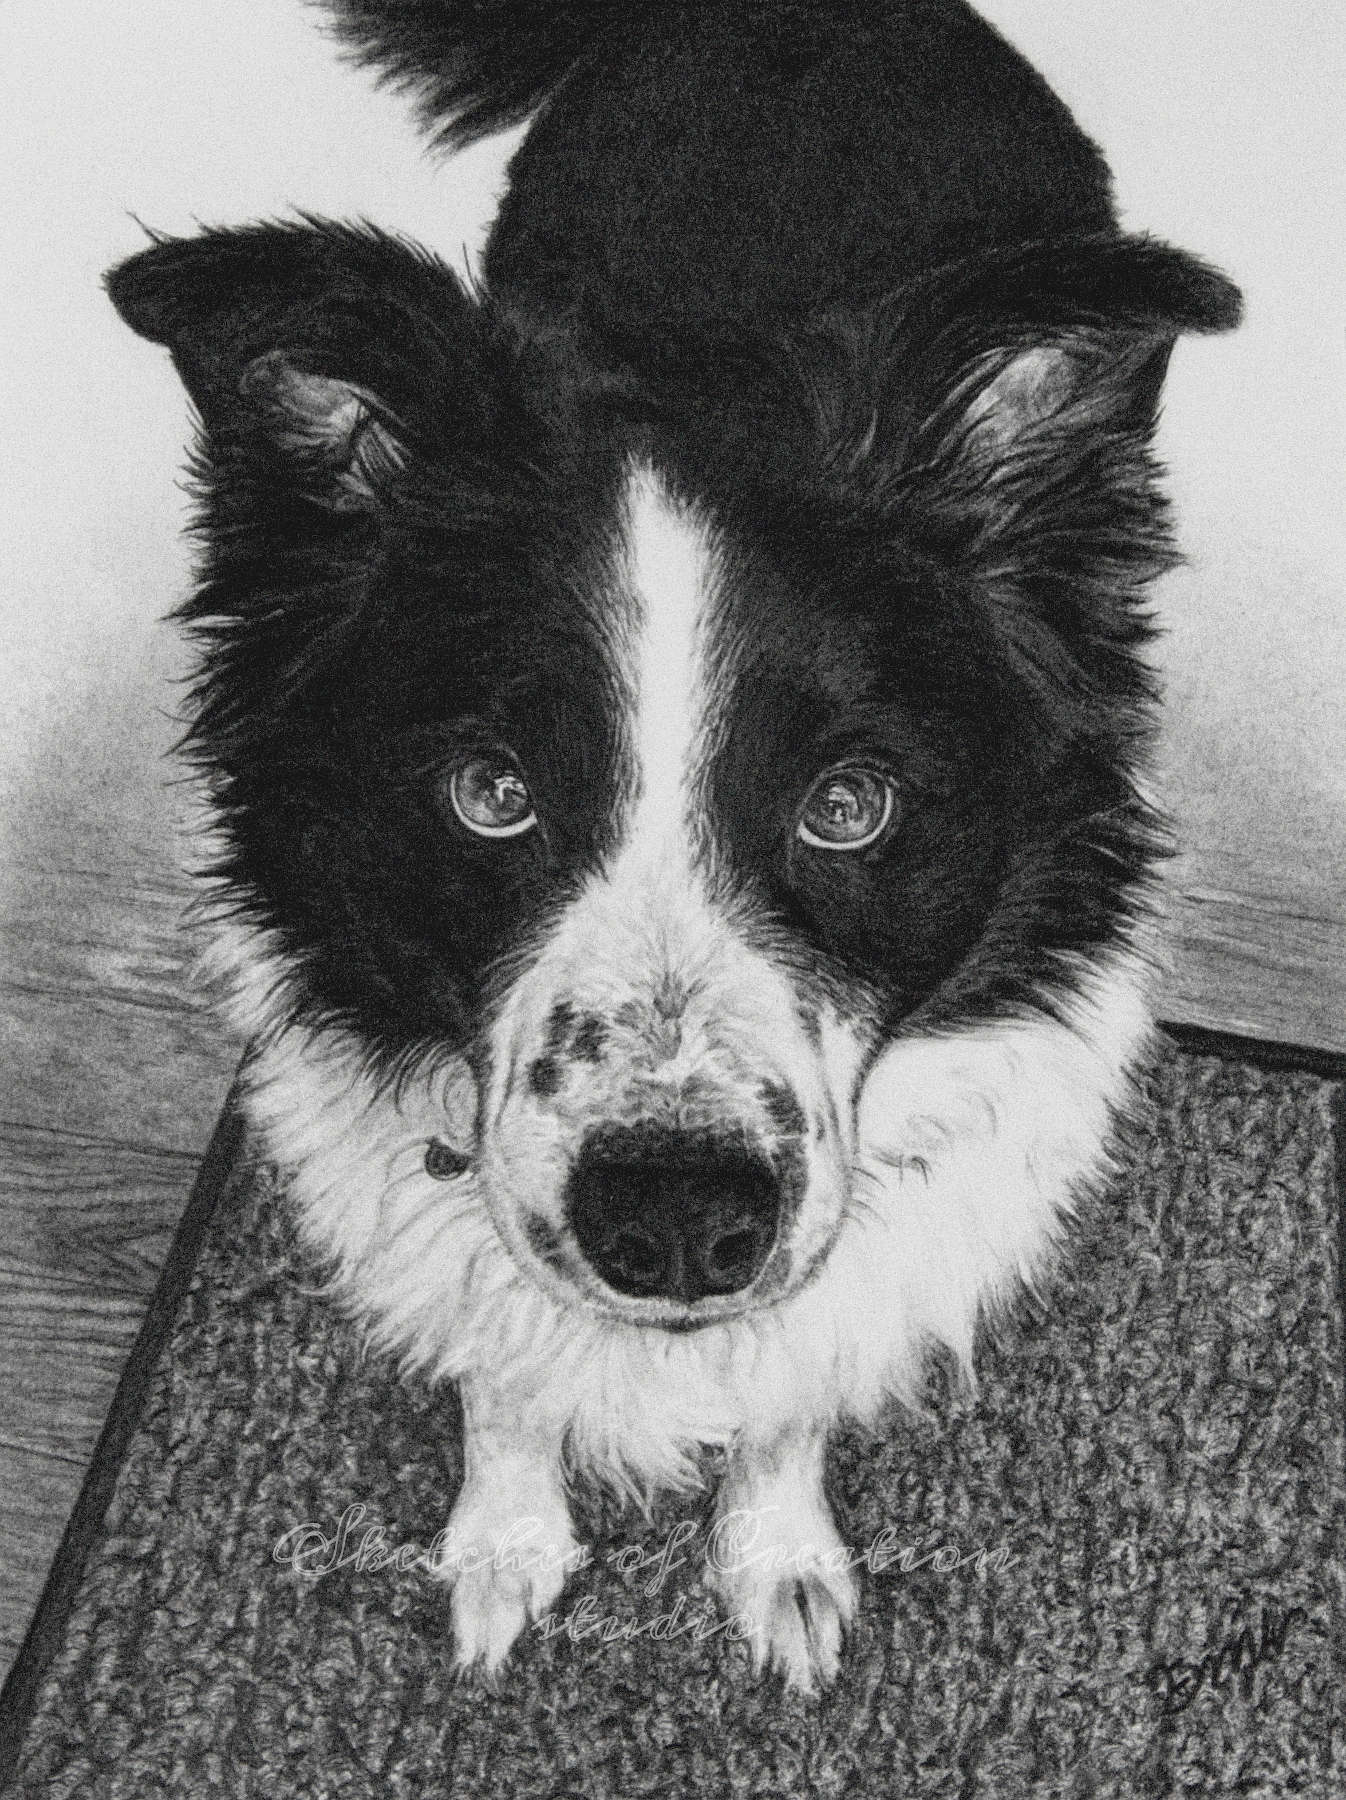 'Joey' a drawing of a white and black Border-collie-Australian Shepherd looking up at his owner. 6x8 inches. Completed June 2020